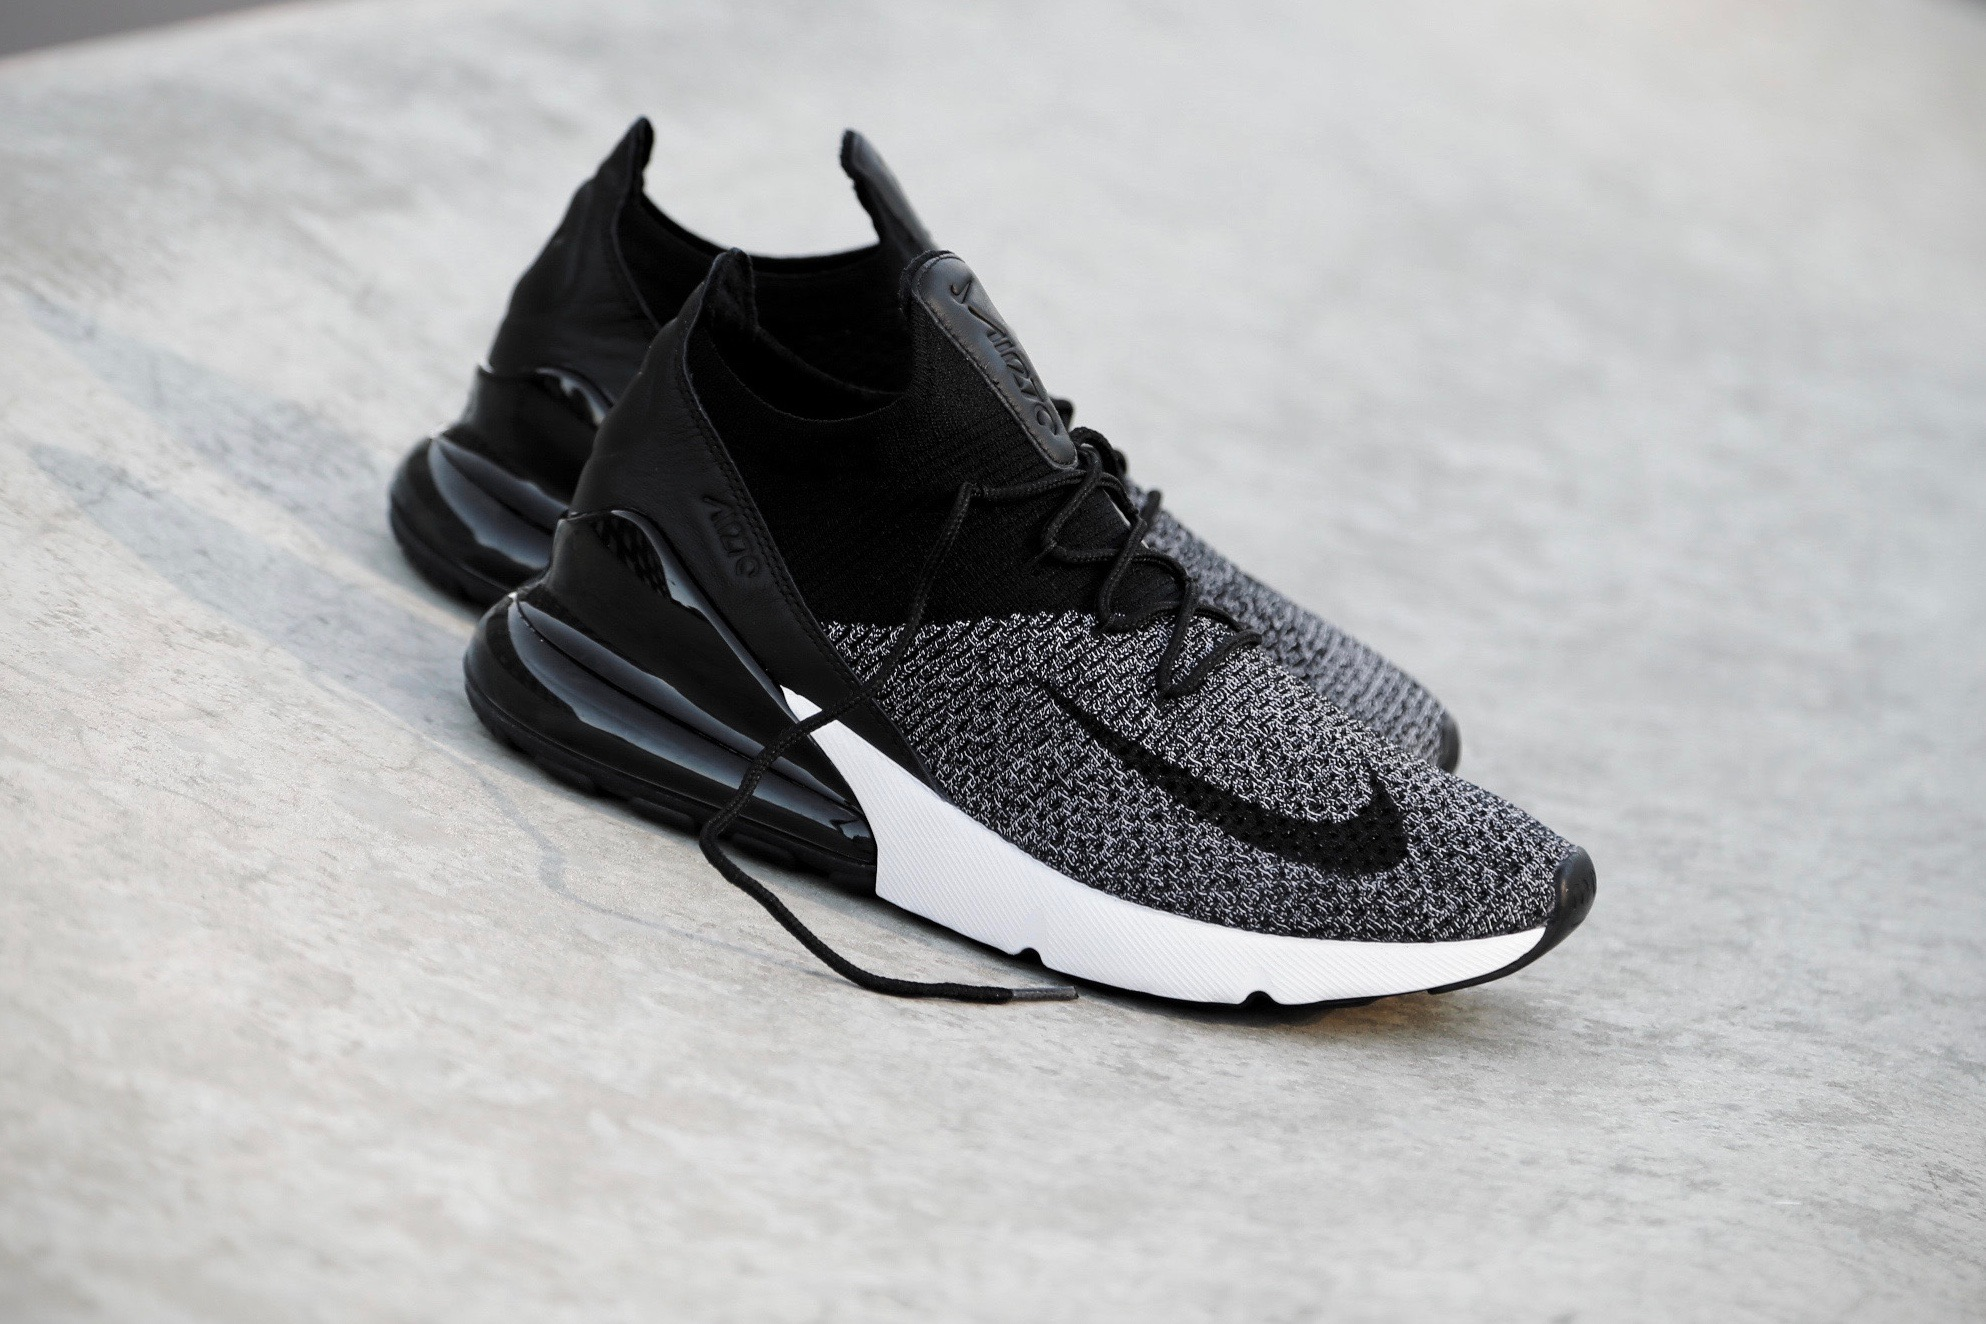 Nike Air Max 270 Flyknit - Black / White